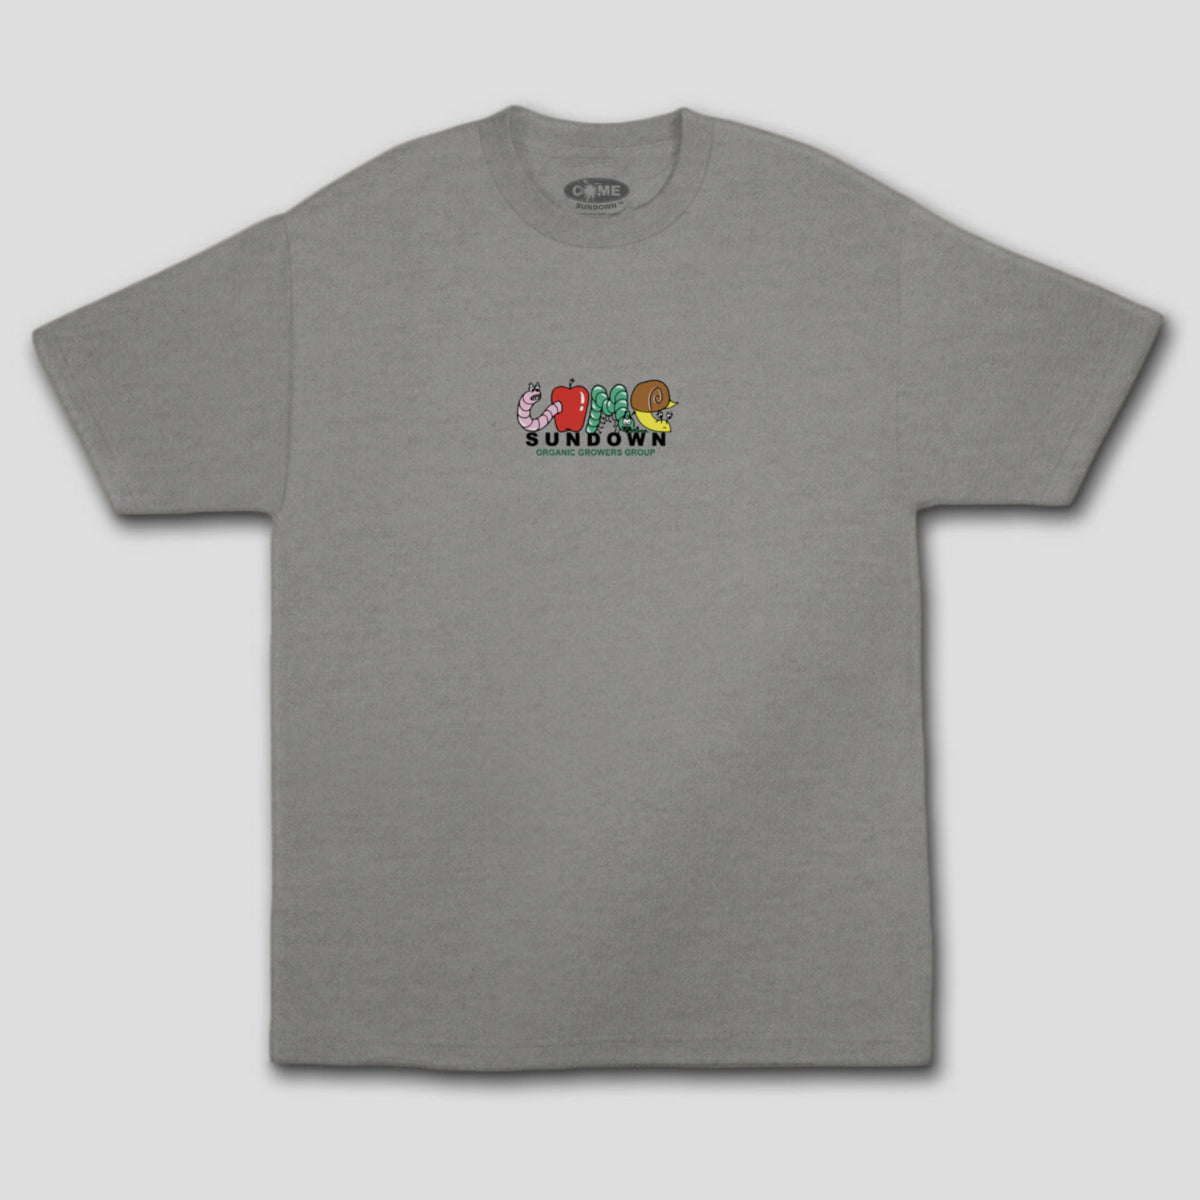 "COME SUNDOWN ""GROWERS"" TEE ATHLETIC HEATHER"